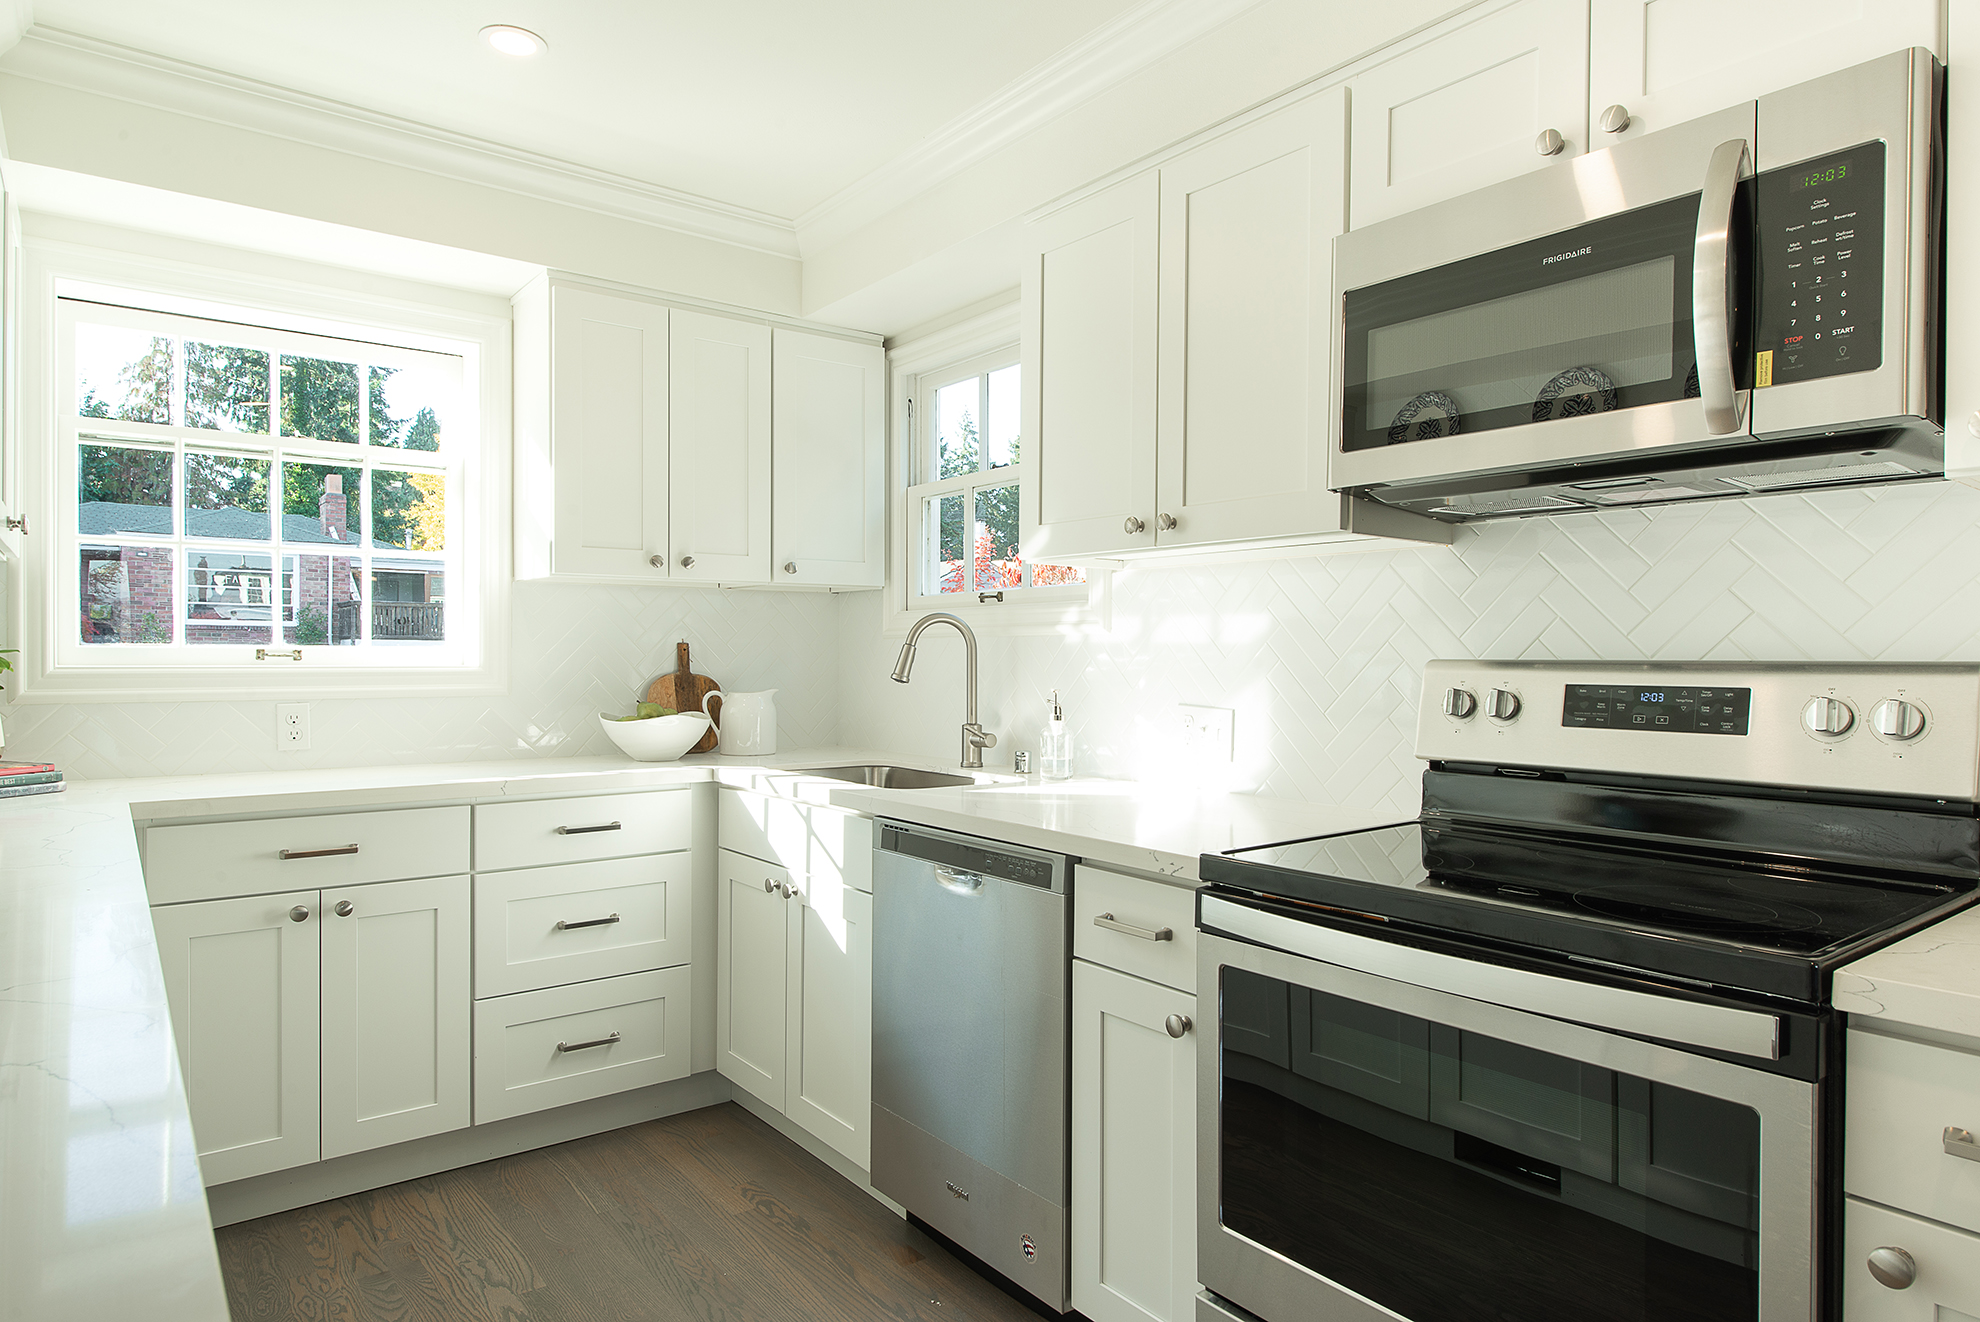 The backsplash is classic and clean.